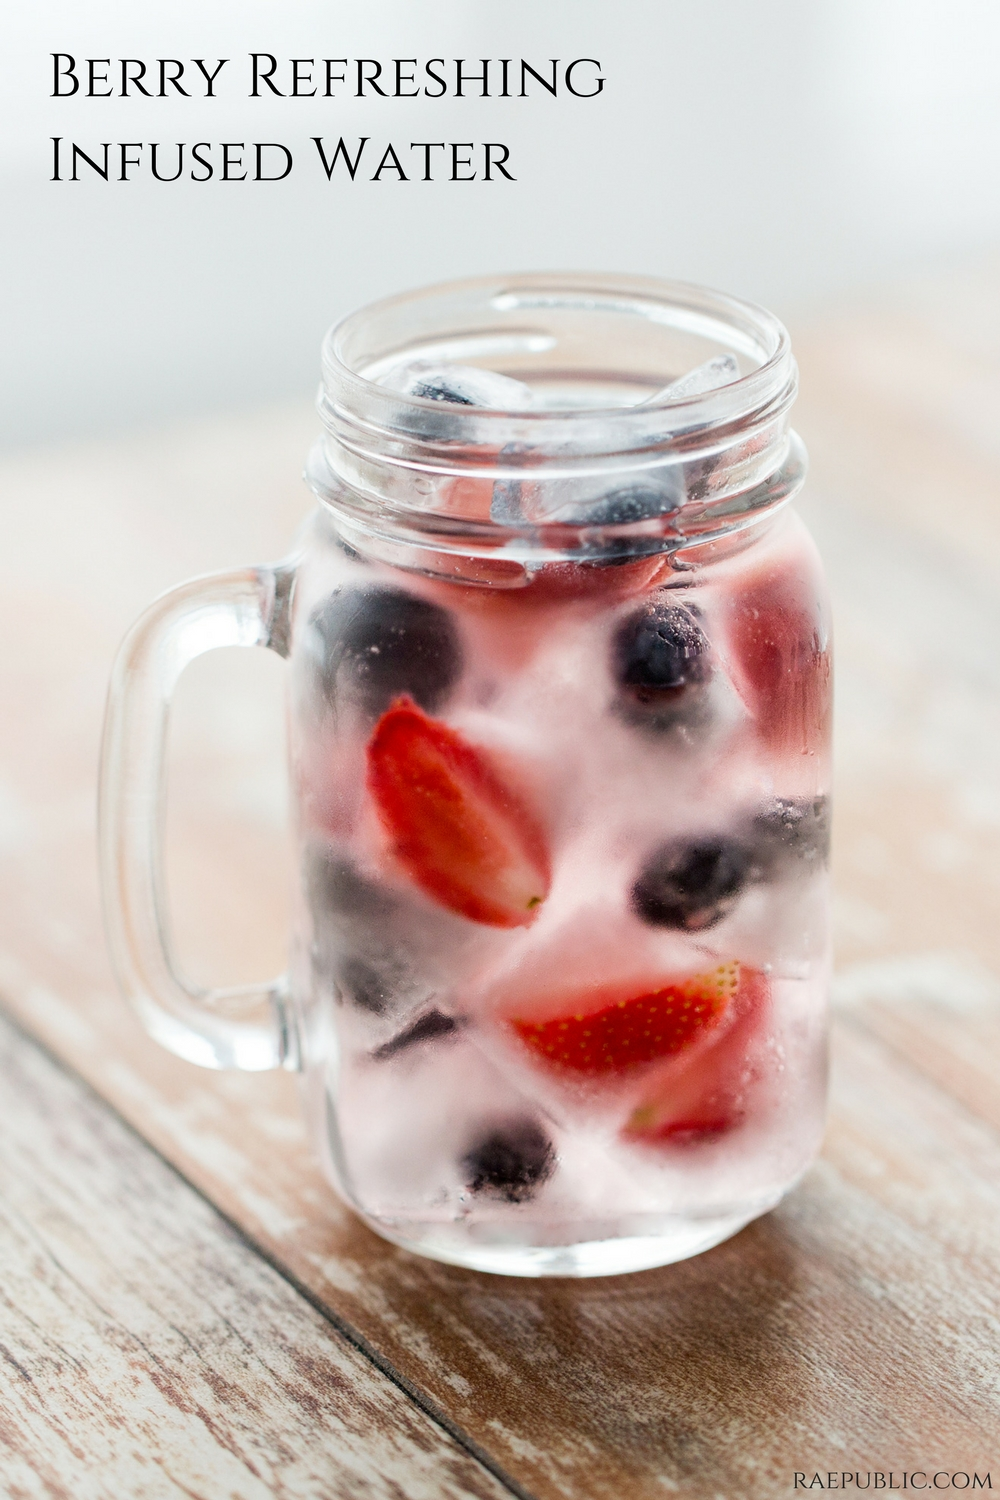 Refreshing and delicious infused water made with strawberries and blueberries.